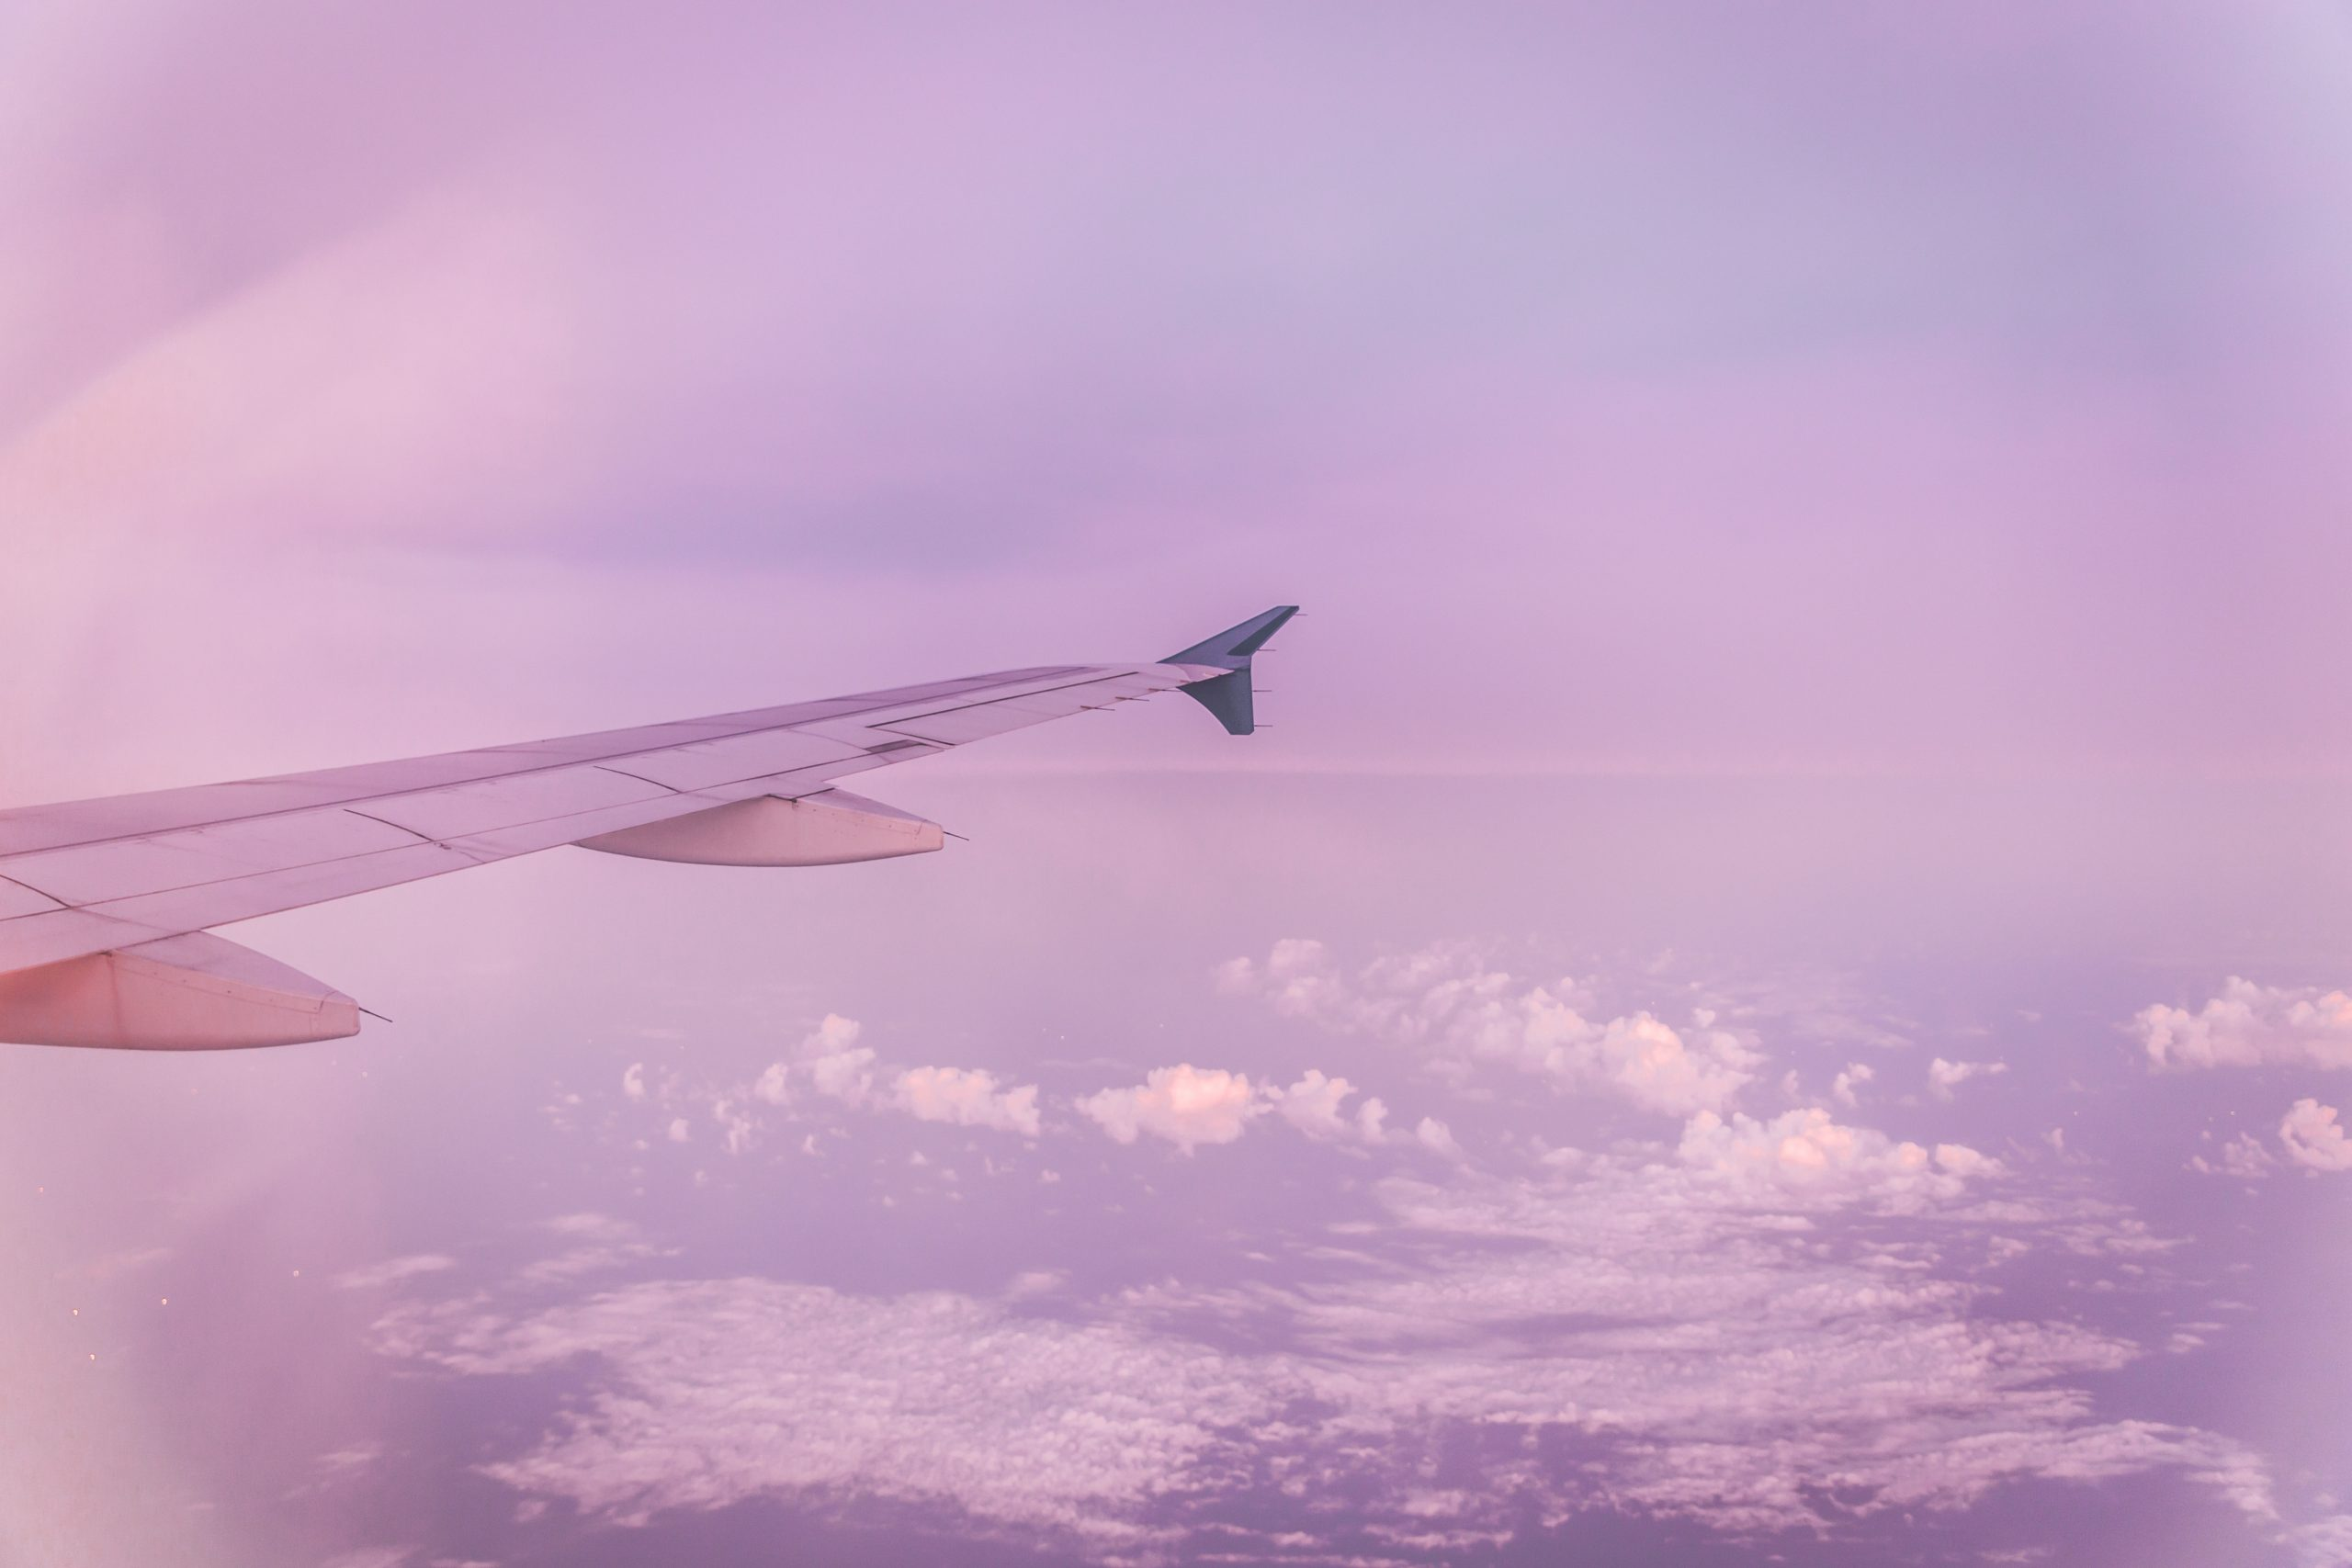 Plane wing surrounded by pink sky and clouds - the view from the plane's window